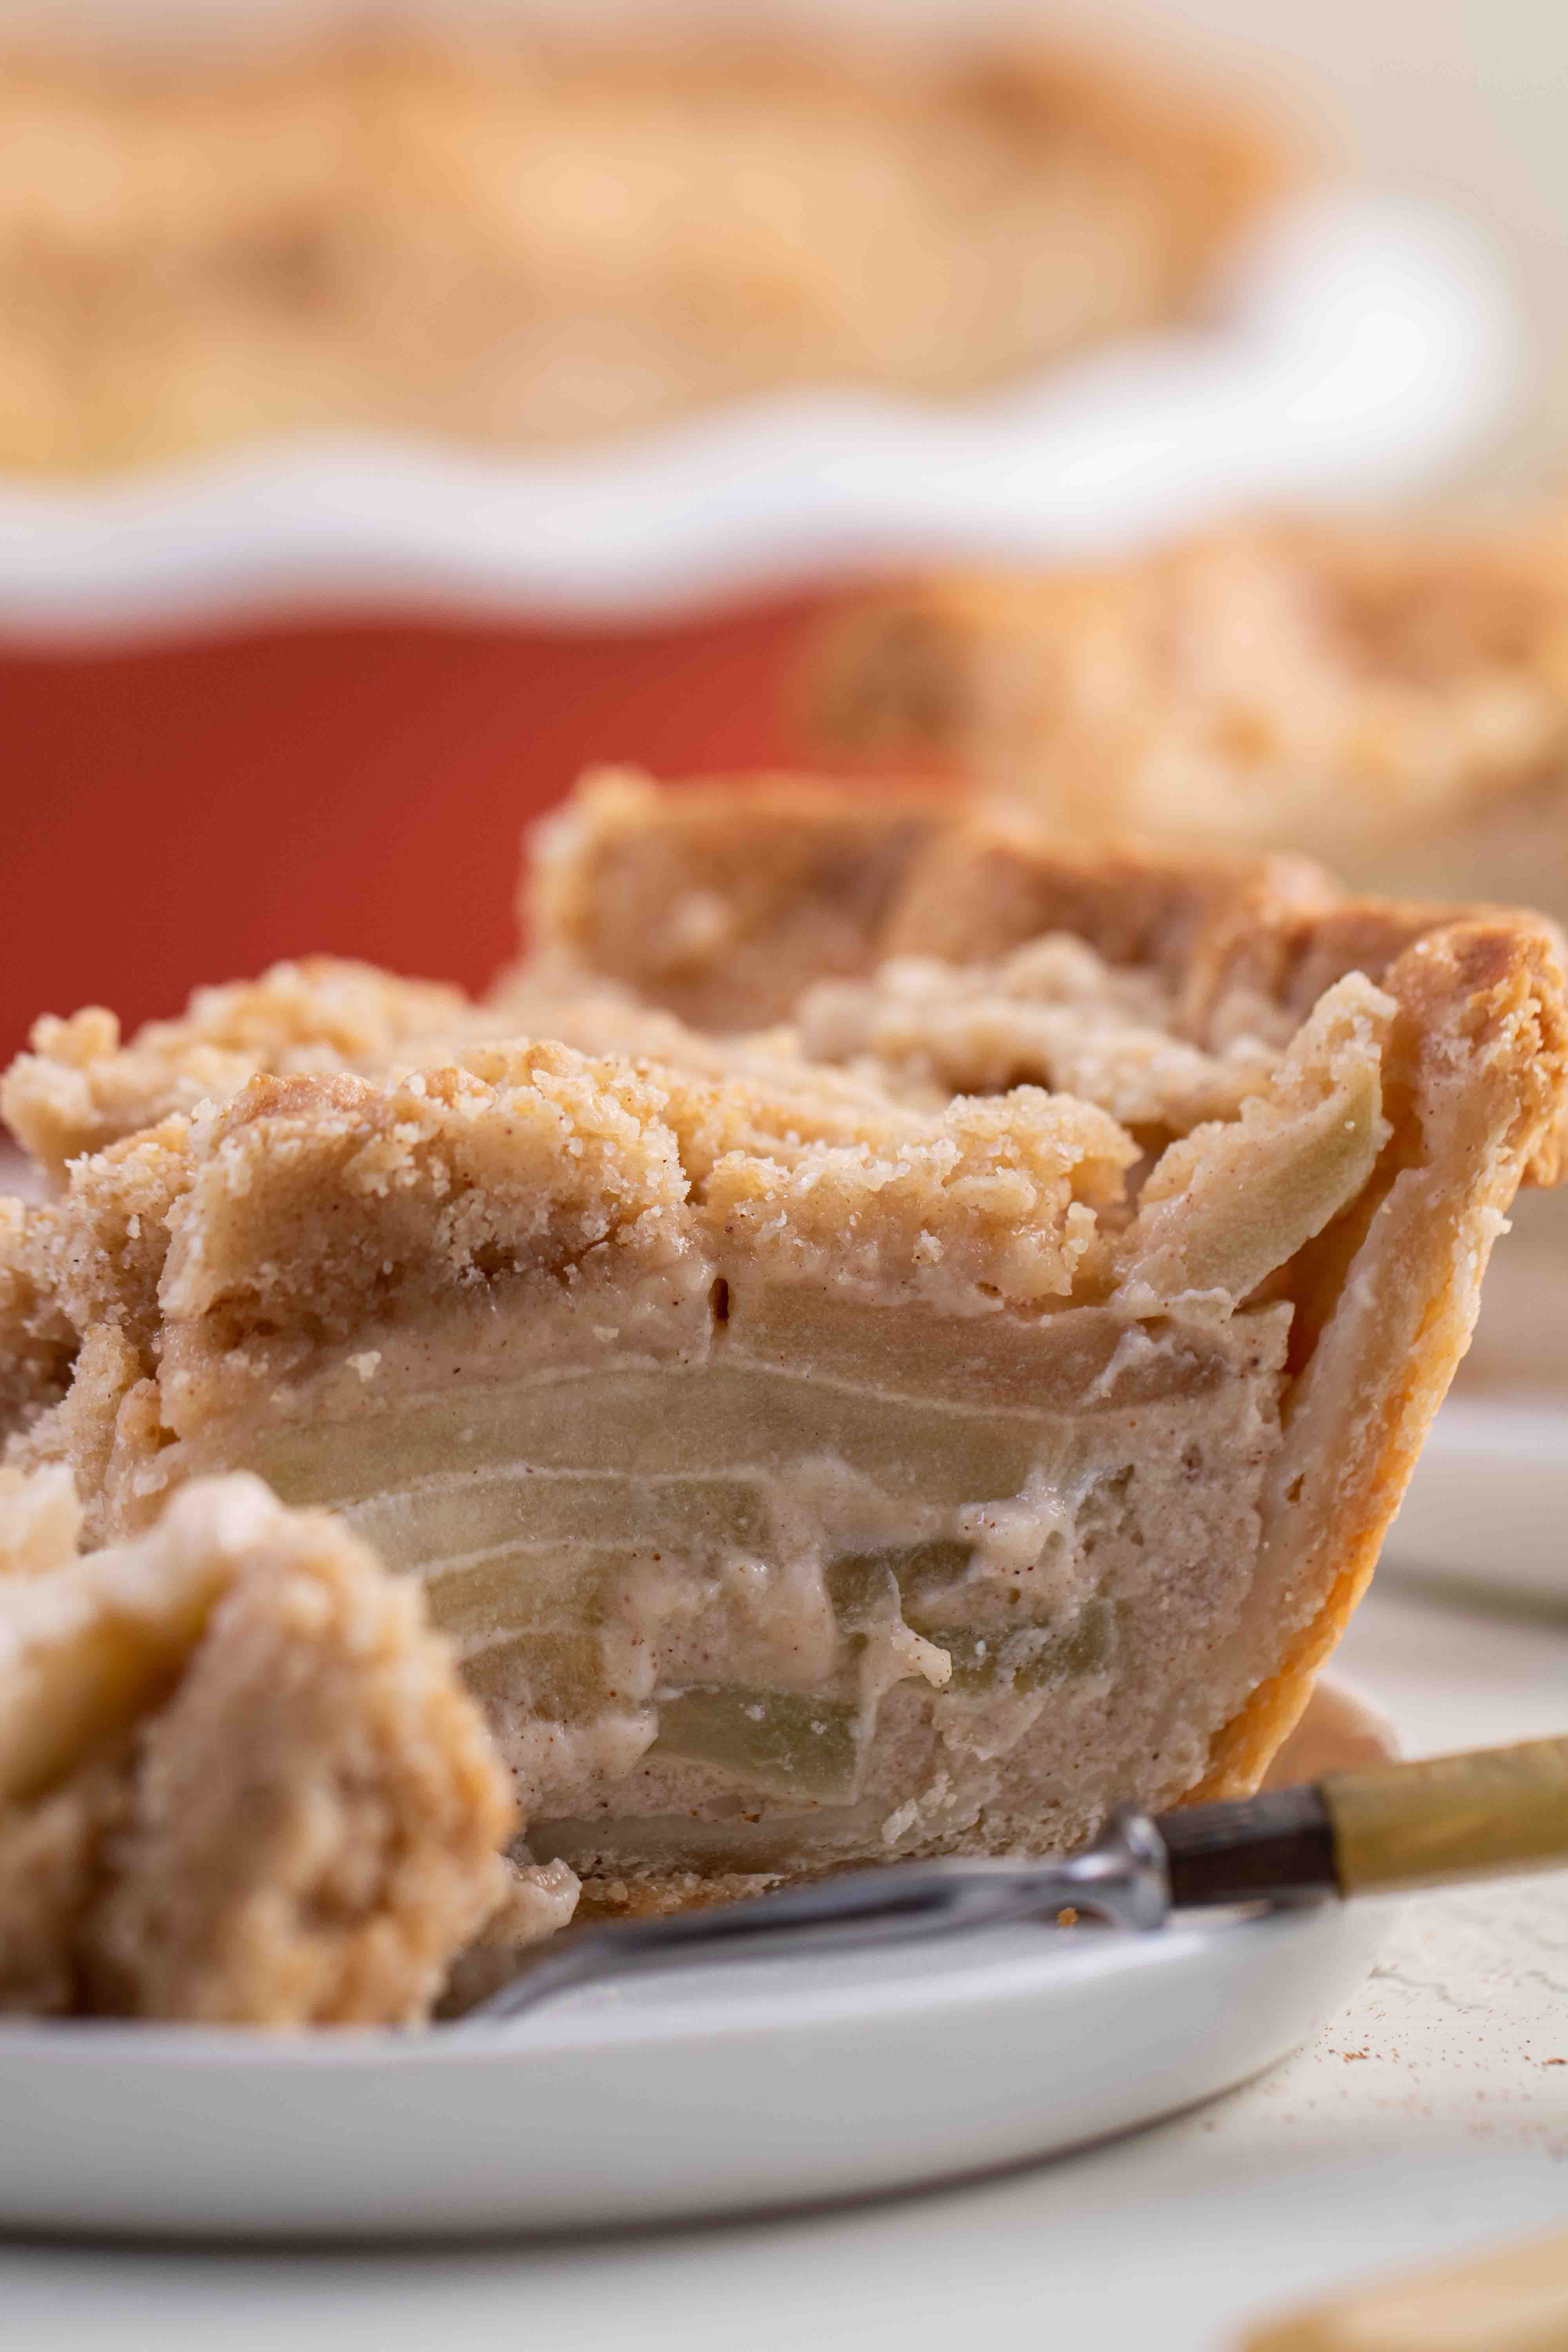 Dutch apple pie with thin apples cooked in between buttery crust and a crumbly topping